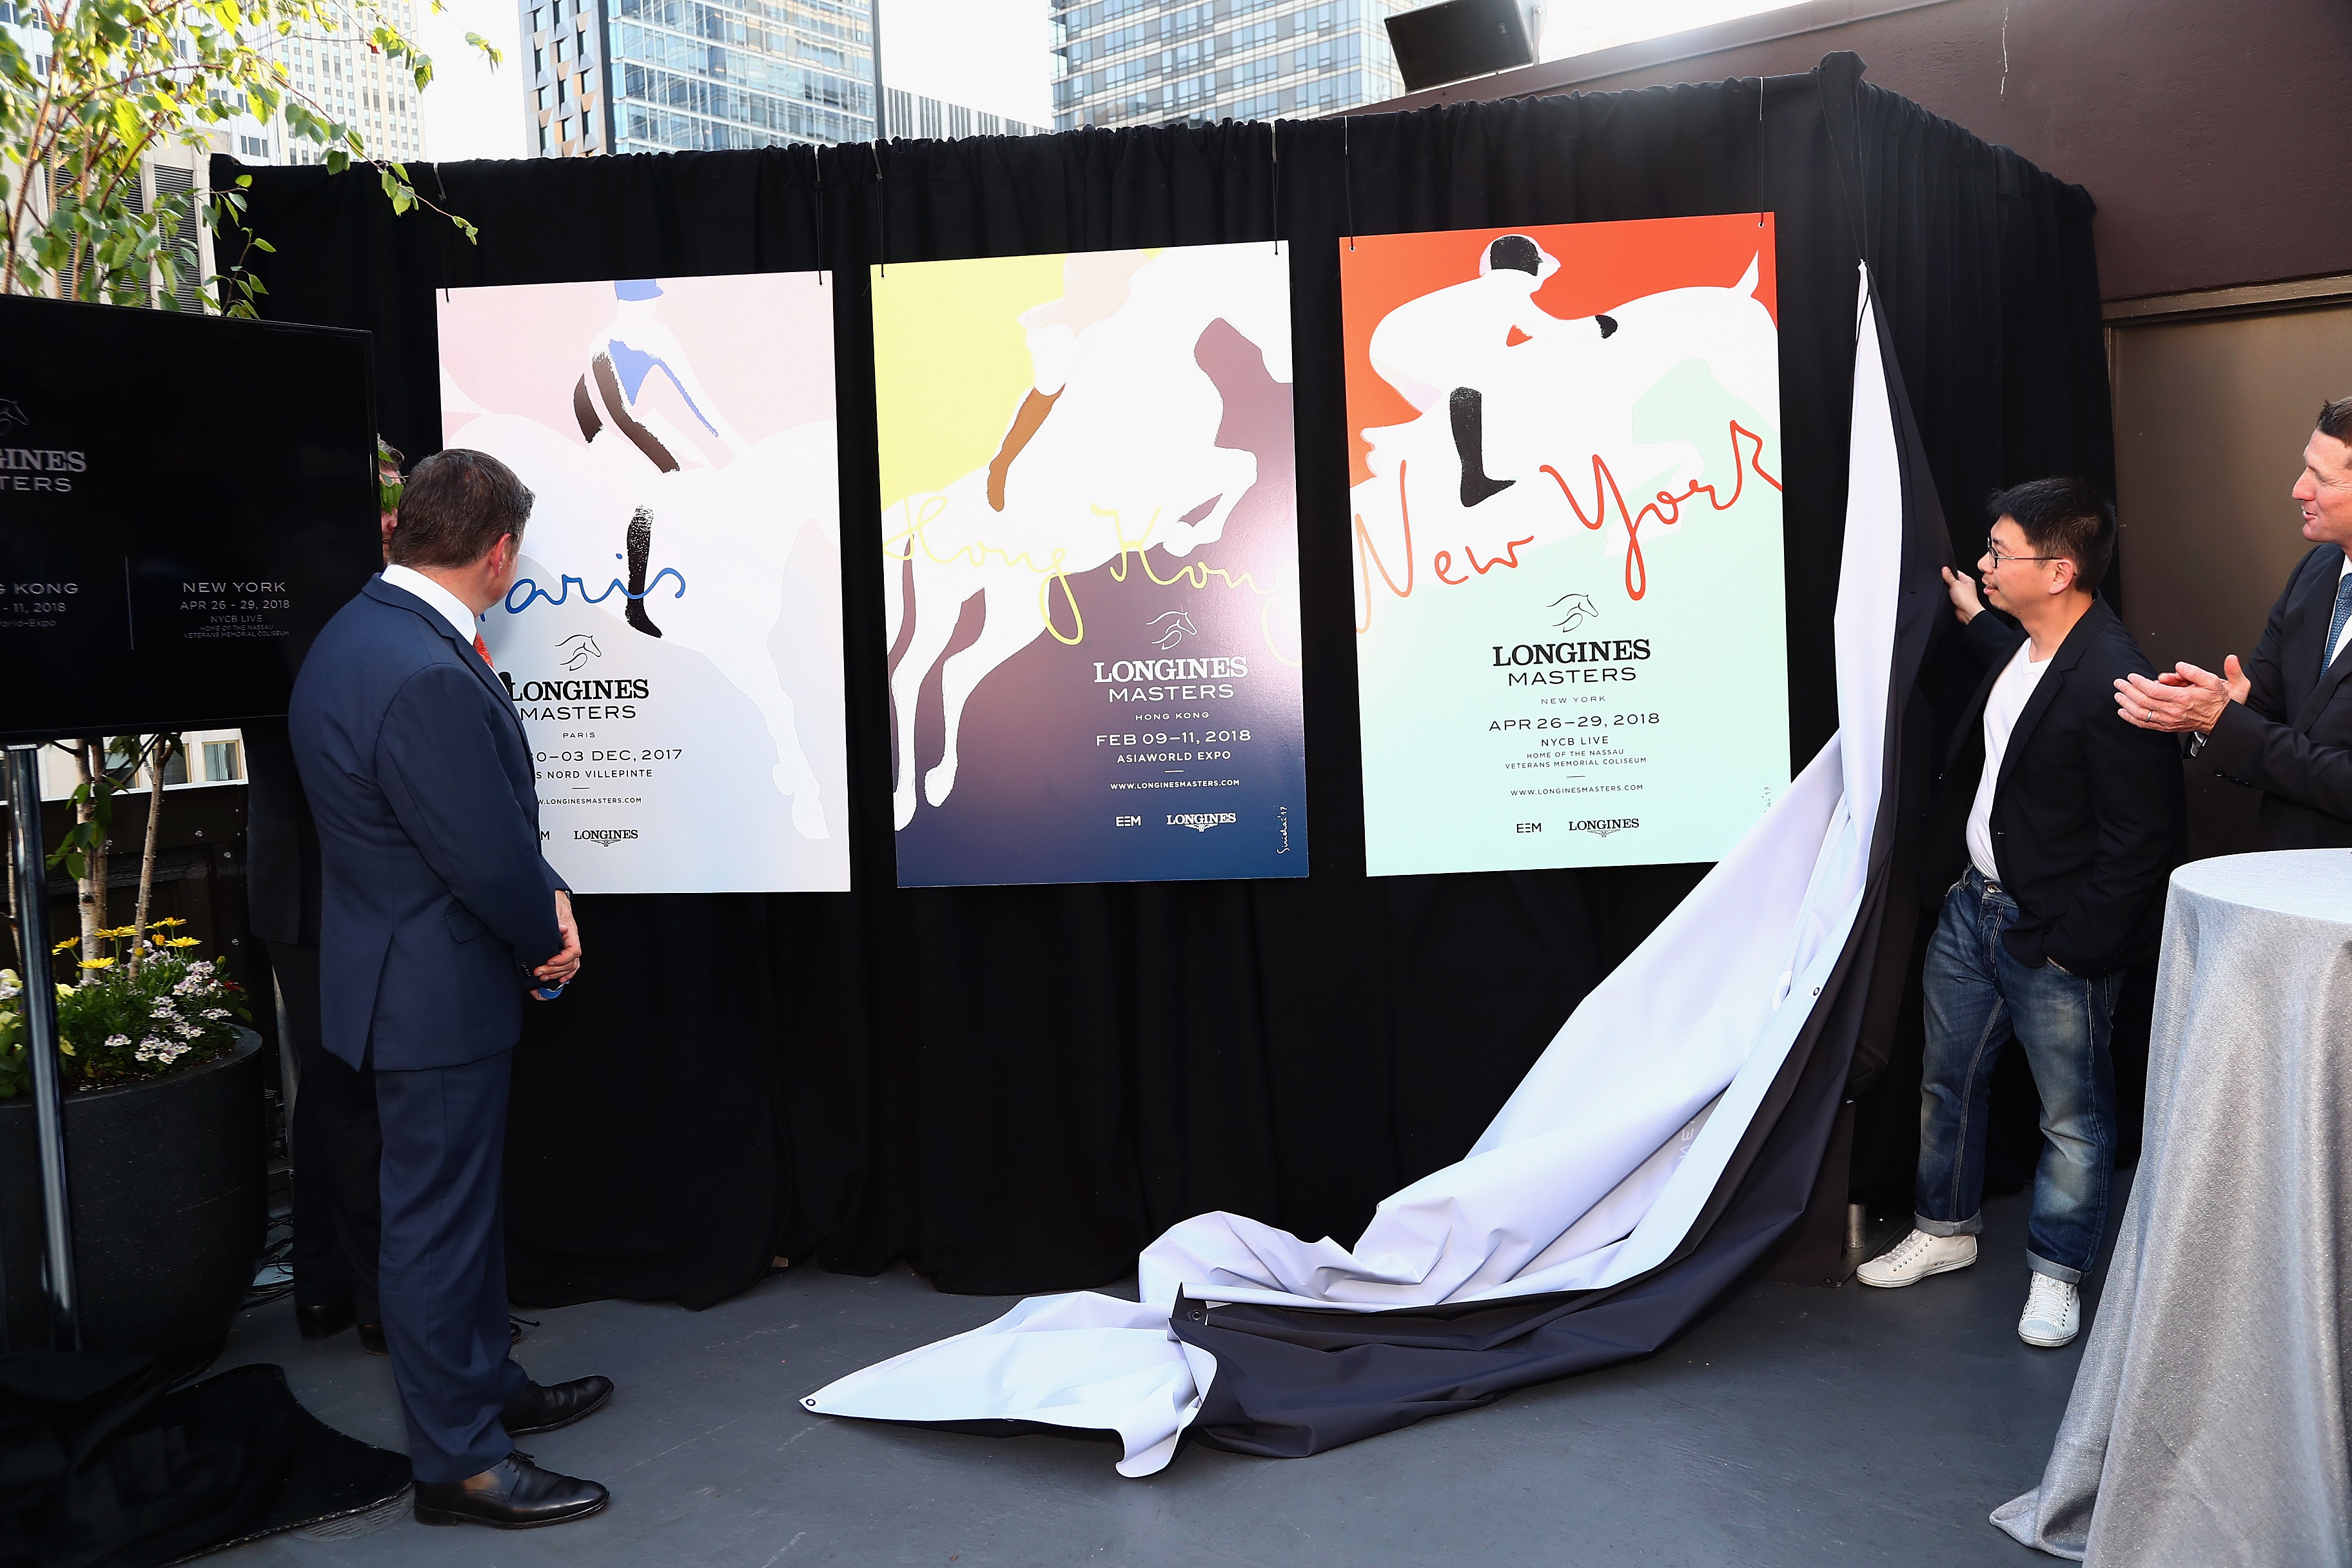 NEW YORK, NY - MAY 17: Artist Sirichai (R) reveals posters at the Longines Masters launch party celebrating Series' epic move to New York at Salon de Ning on May 17, 2017 in New York City. (Photo by Astrid Stawiarz/Getty Images for Longines)